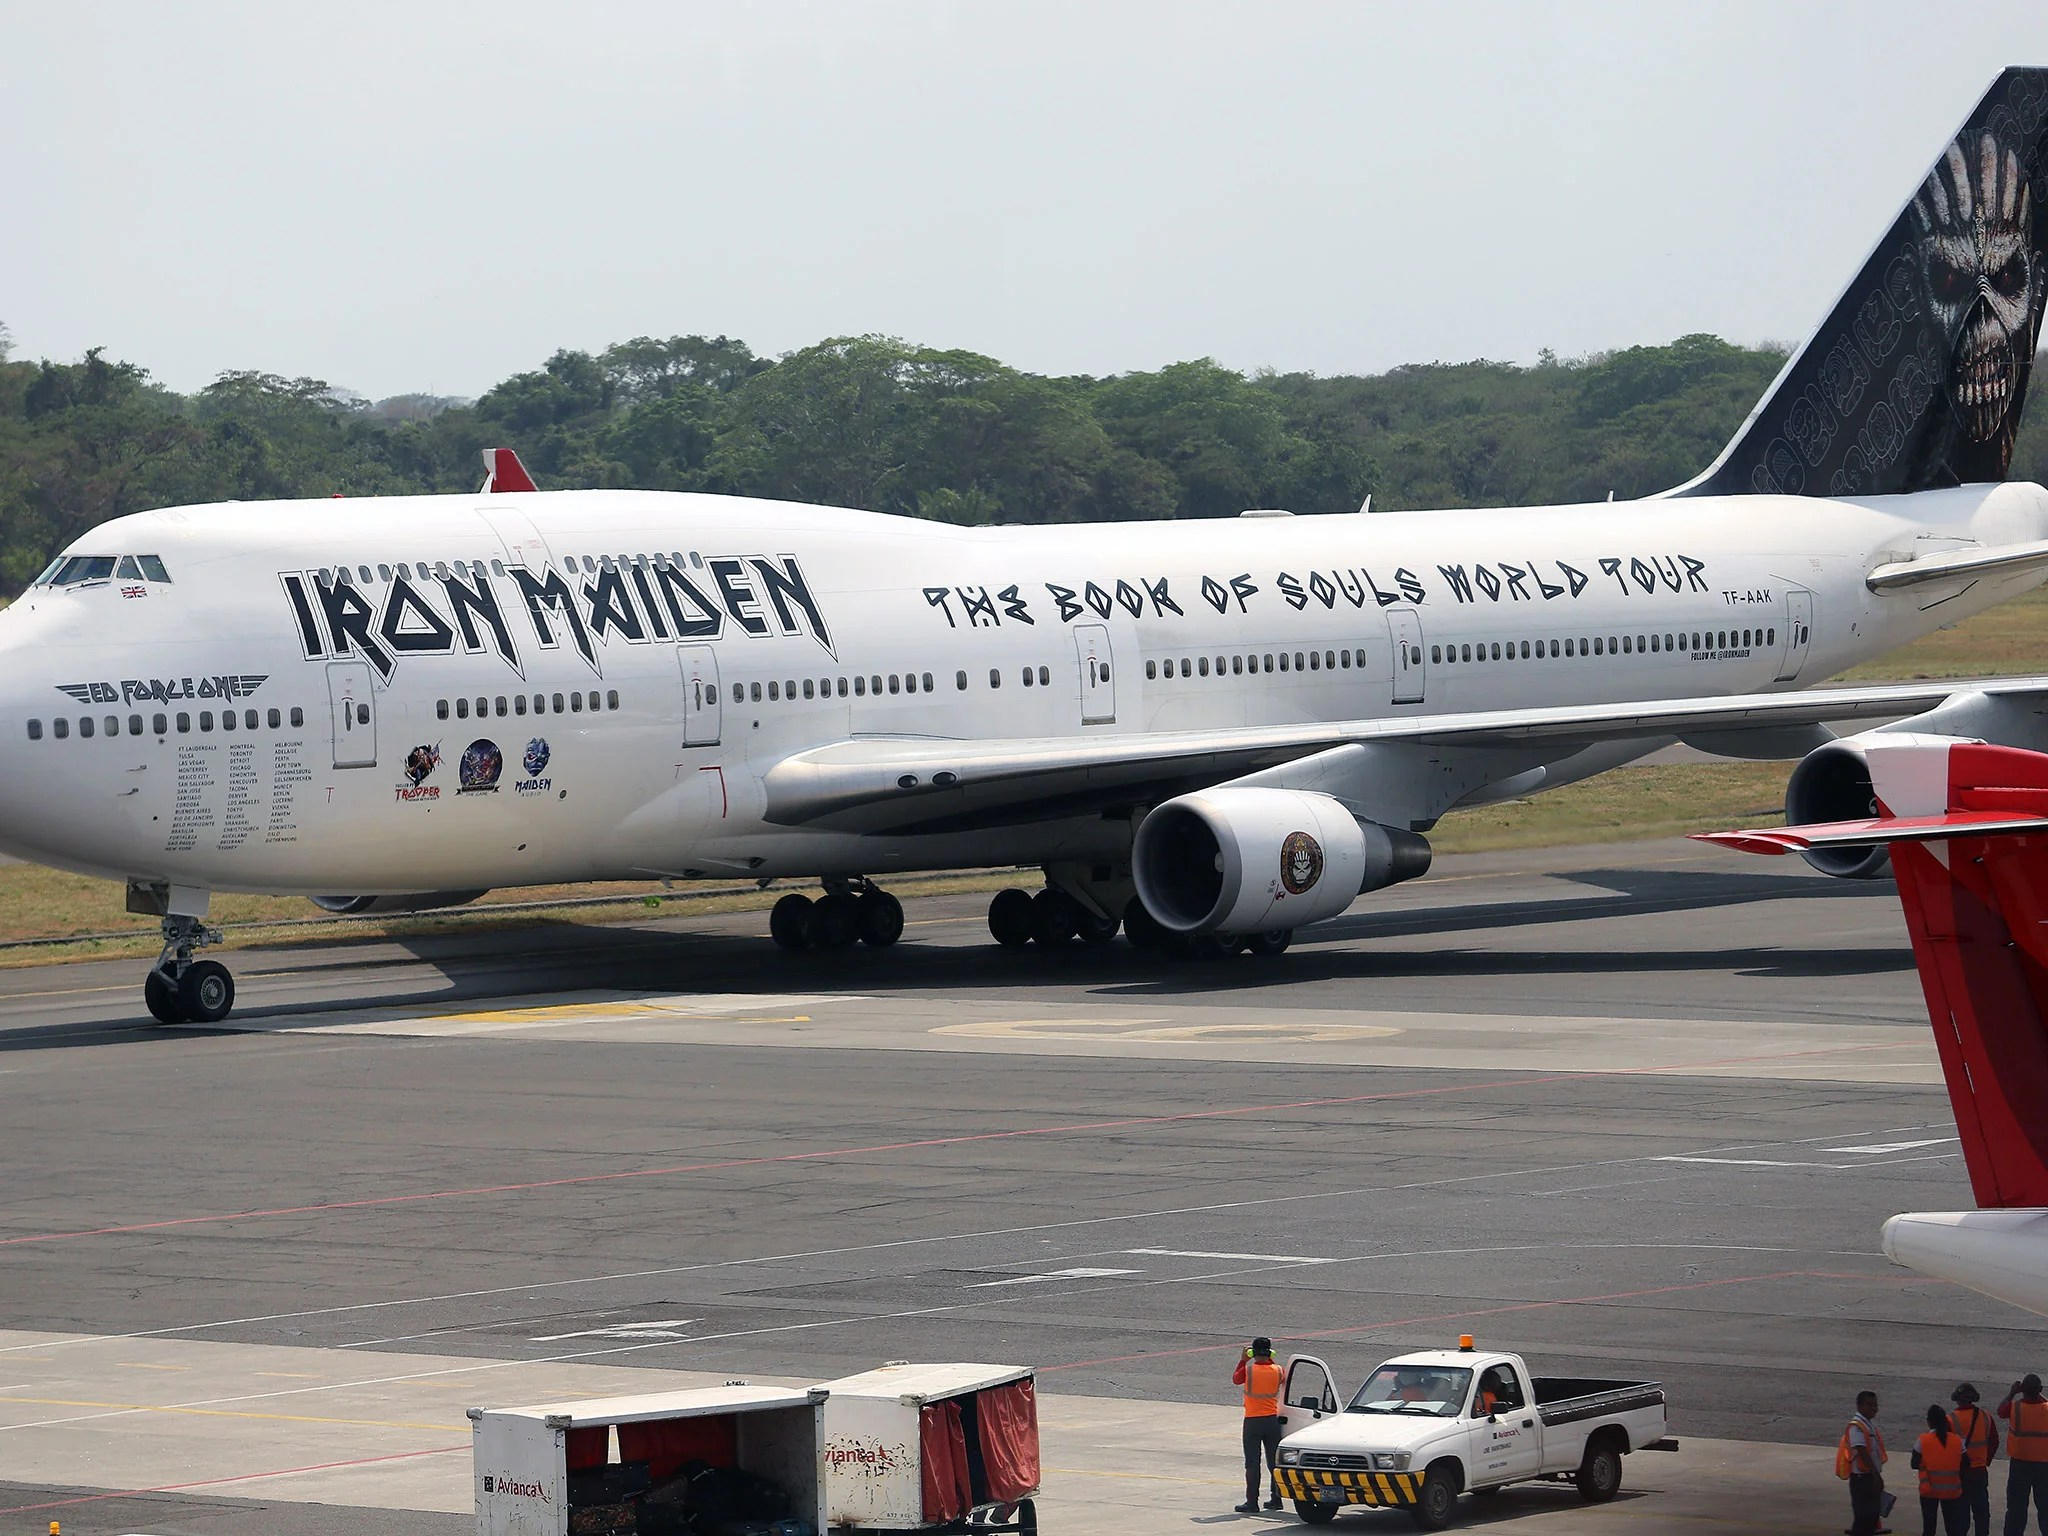 Formula 1 Car Hd Wallpapers Iron Maiden S Plane Badly Damaged In Collision With Truck